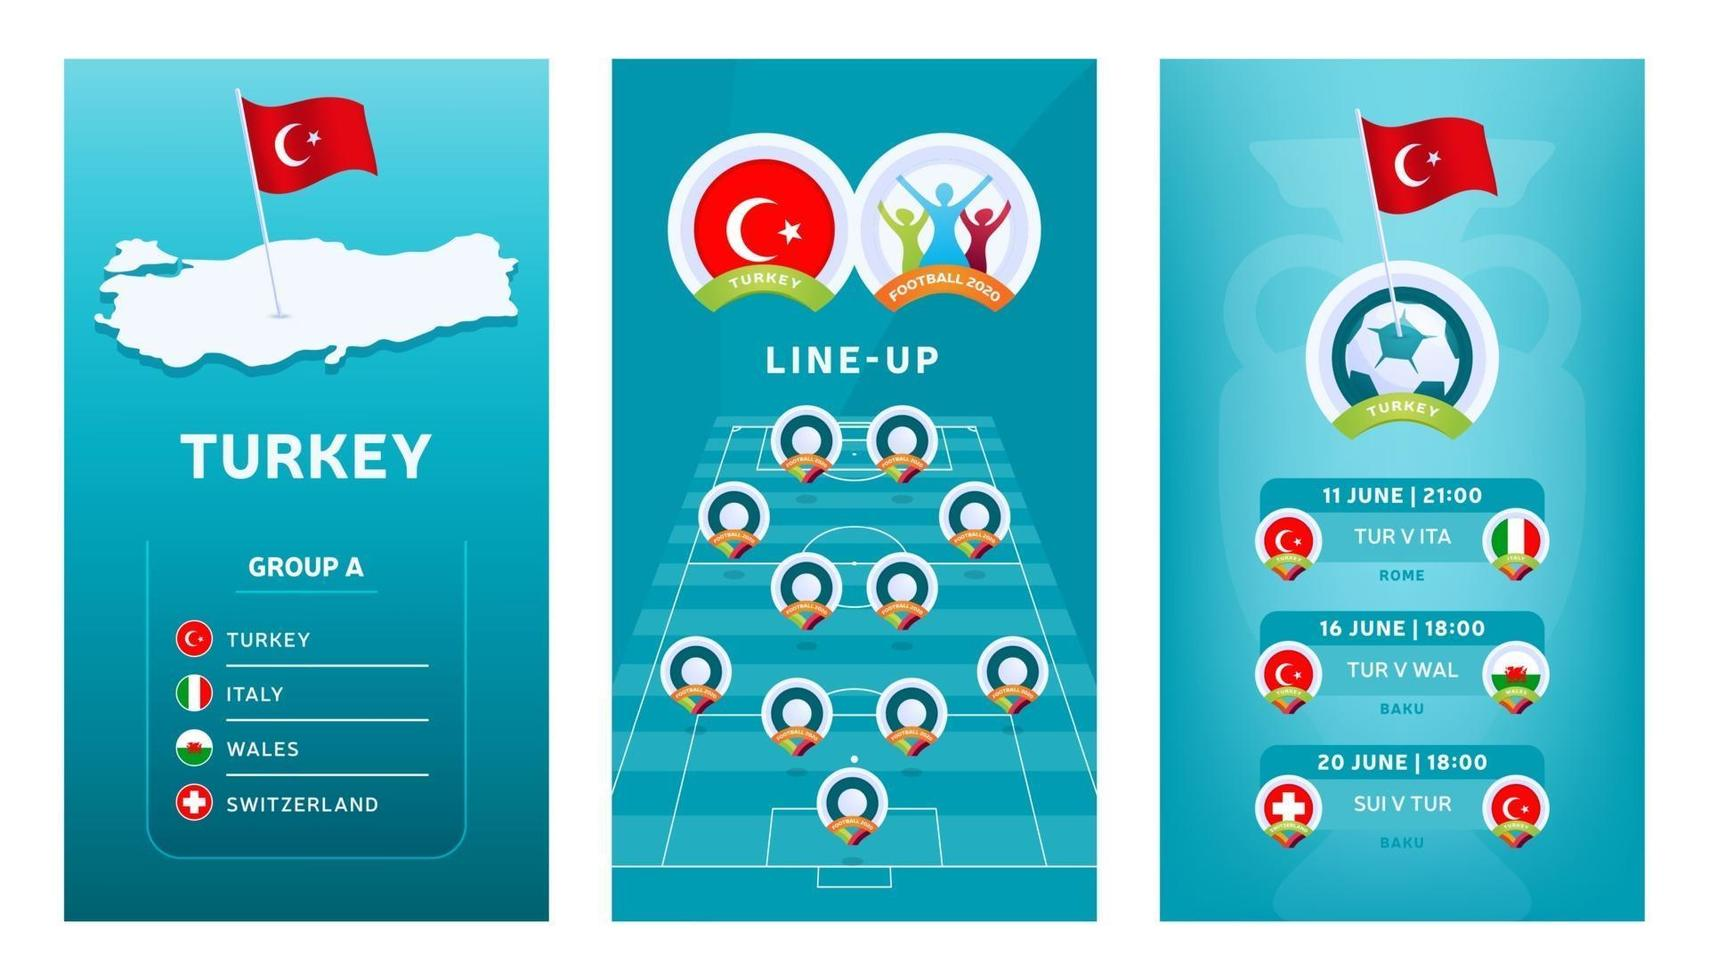 European 2020 football vertical banner set for social media. Turkey group A banner with isometric map, pin flag, match schedule and line-up on soccer field vector